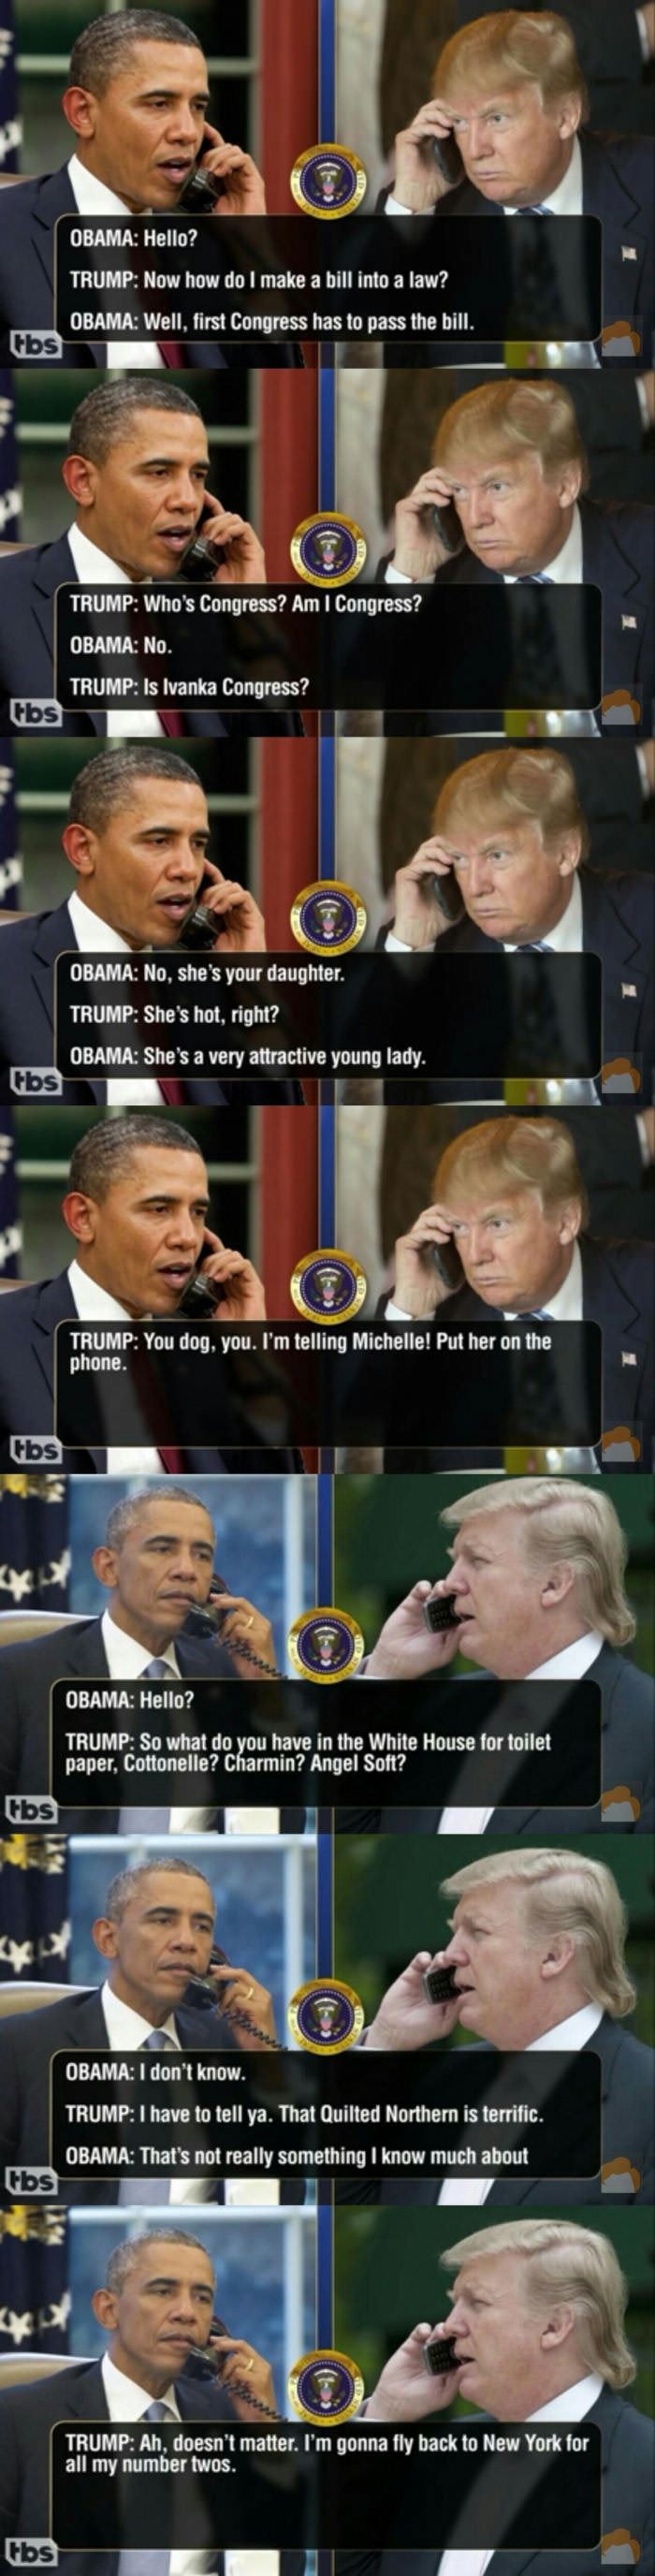 Leaked transcripts of Trump & Obama pt.4